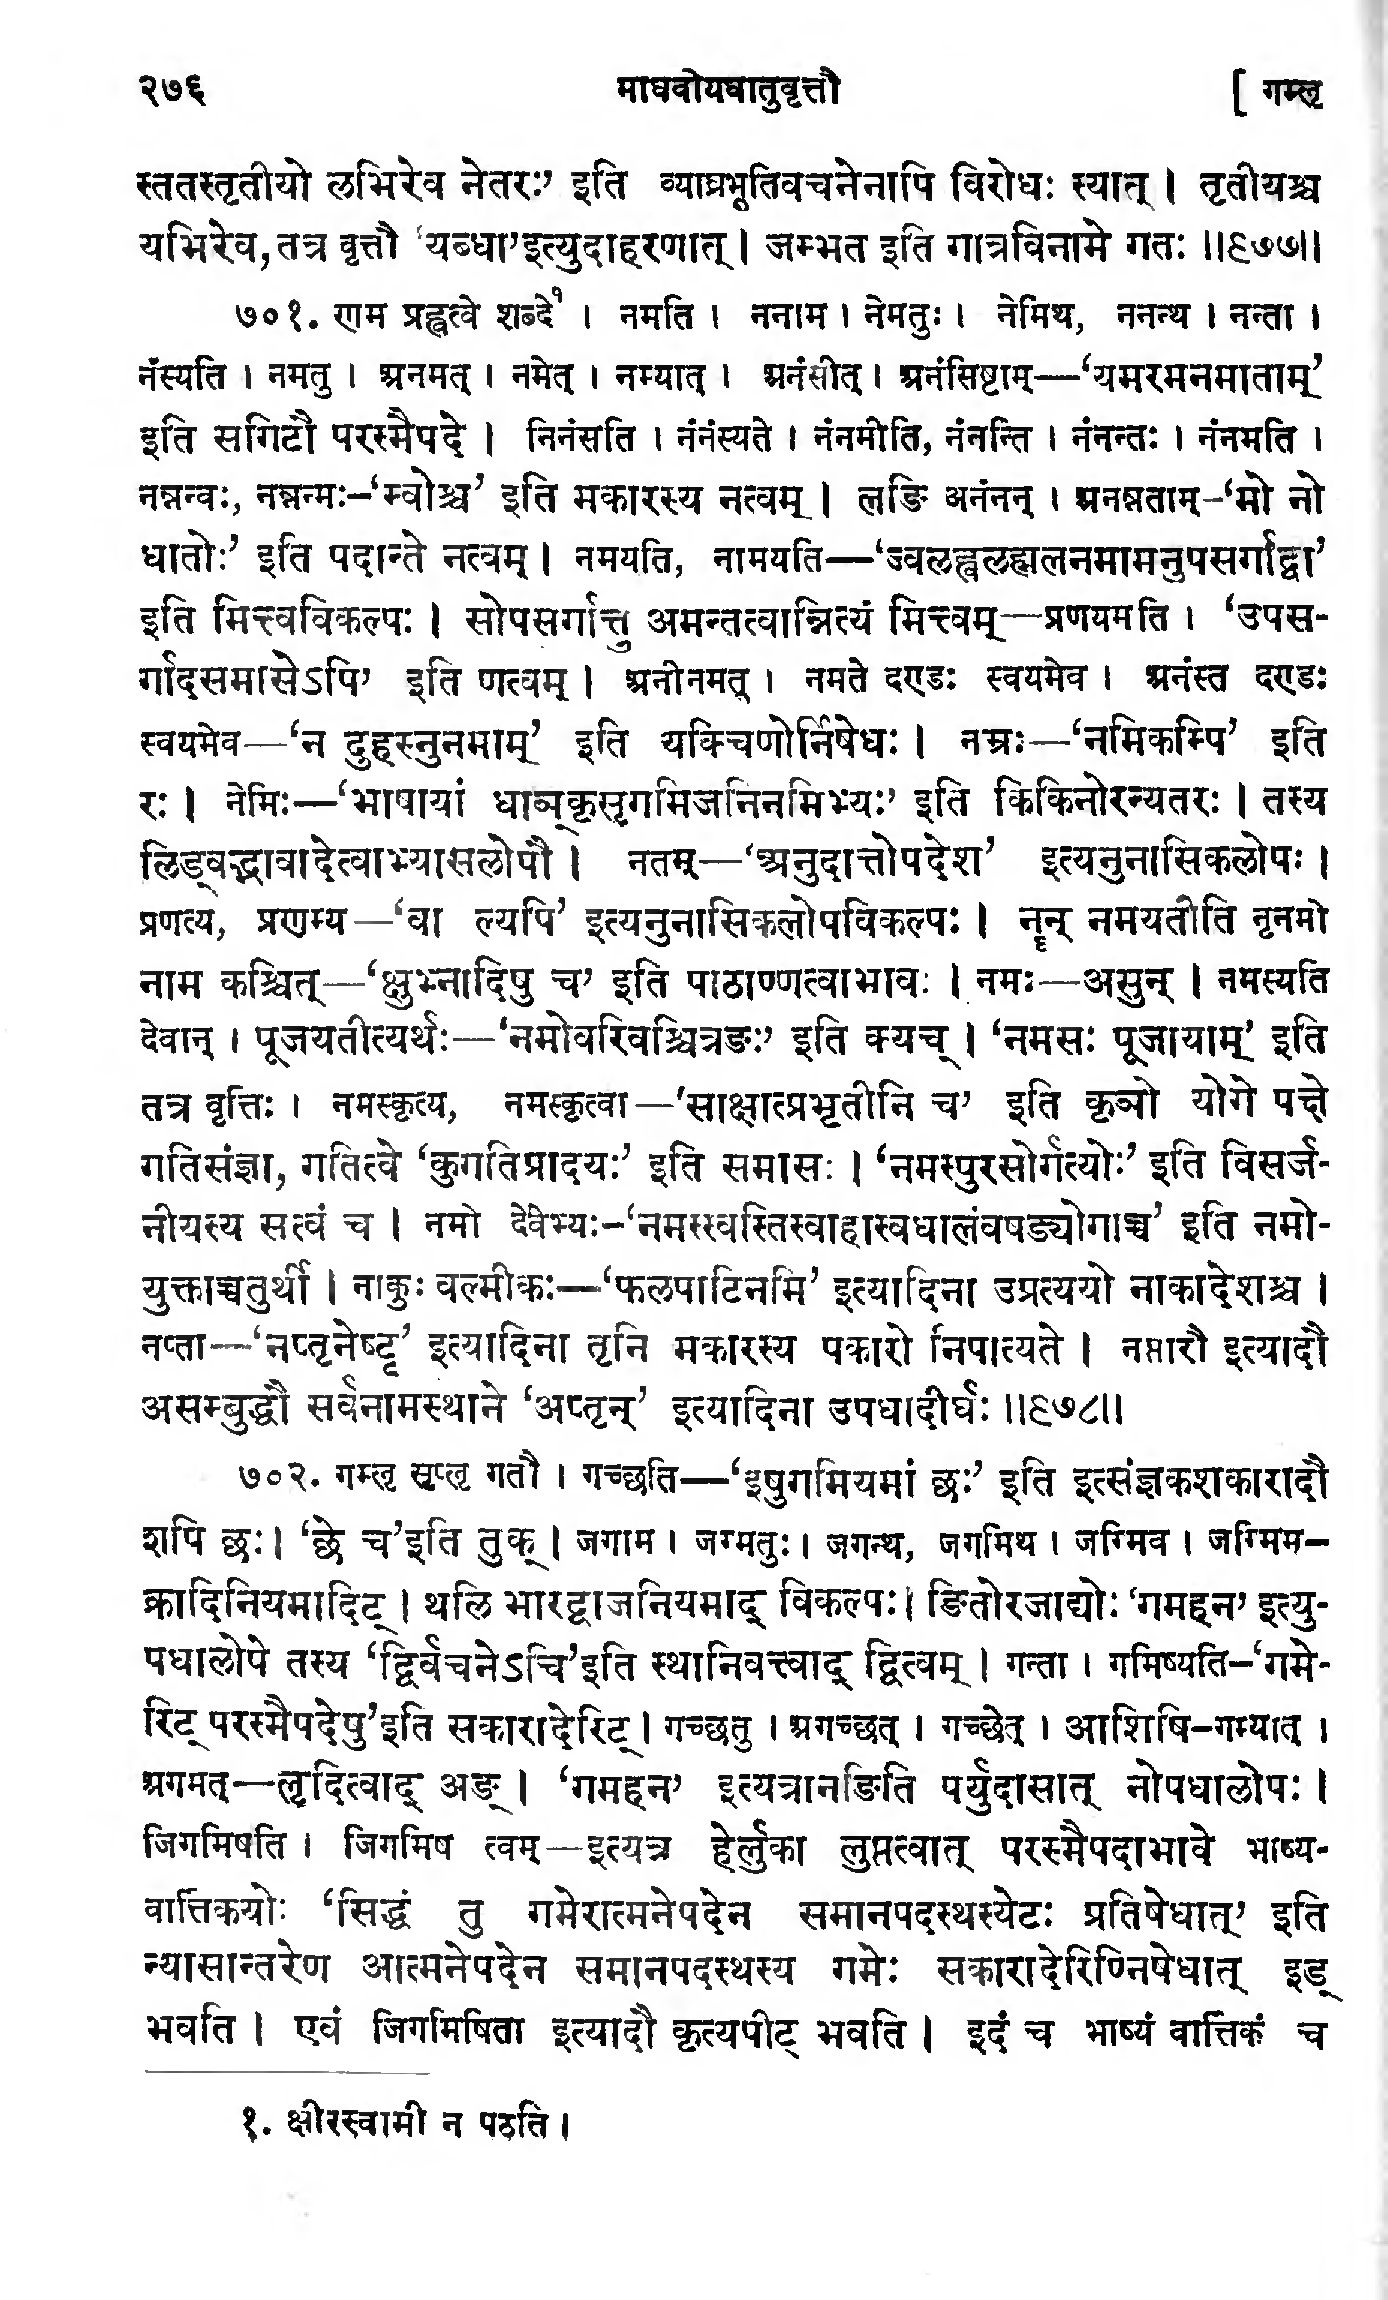 sanskrit to bengali meaning dictionary